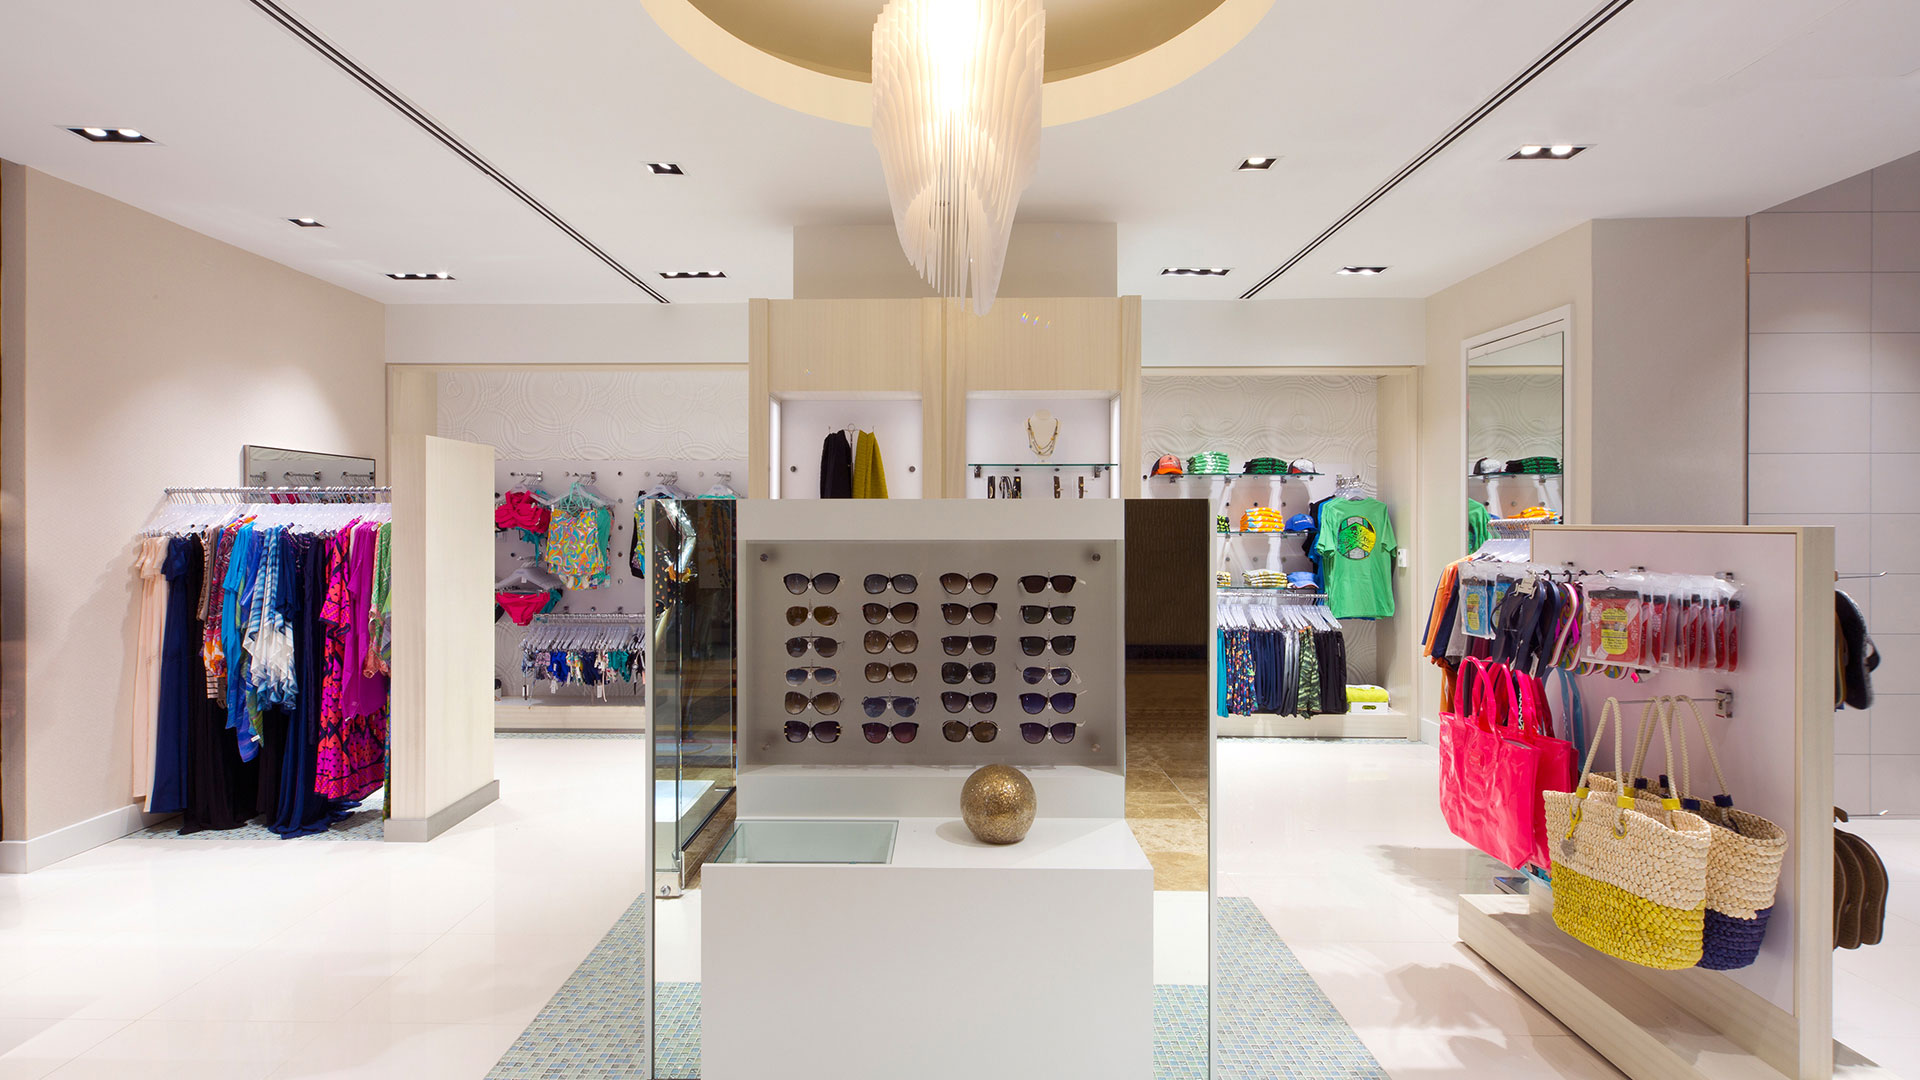 Commercial Retail Design Golden Nugget Lake Charles Landry's Boutique high end apparel Aqua